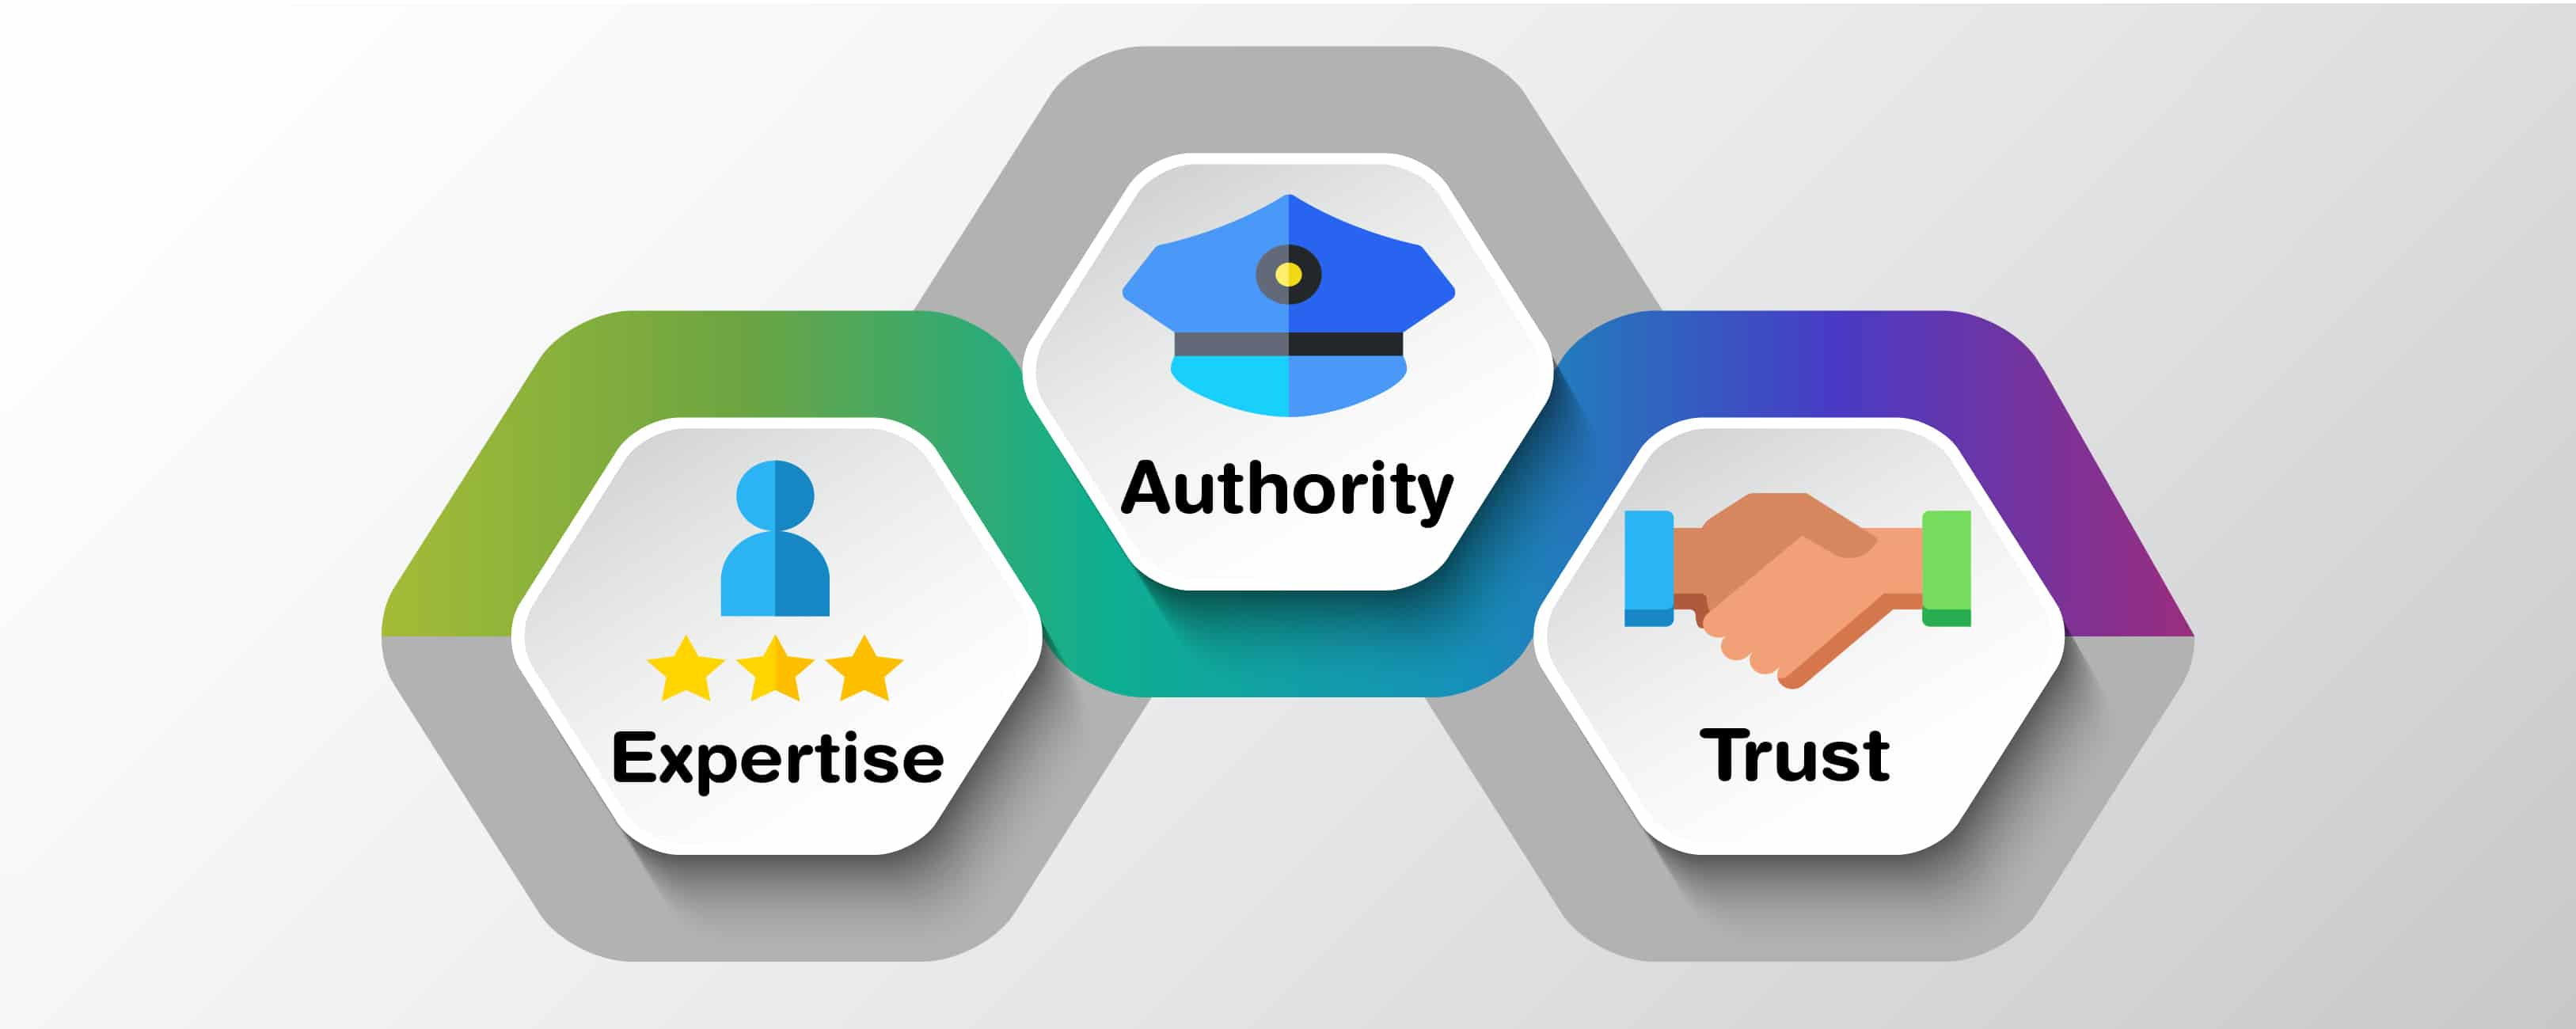 Expertise, Authority and Trust graphic